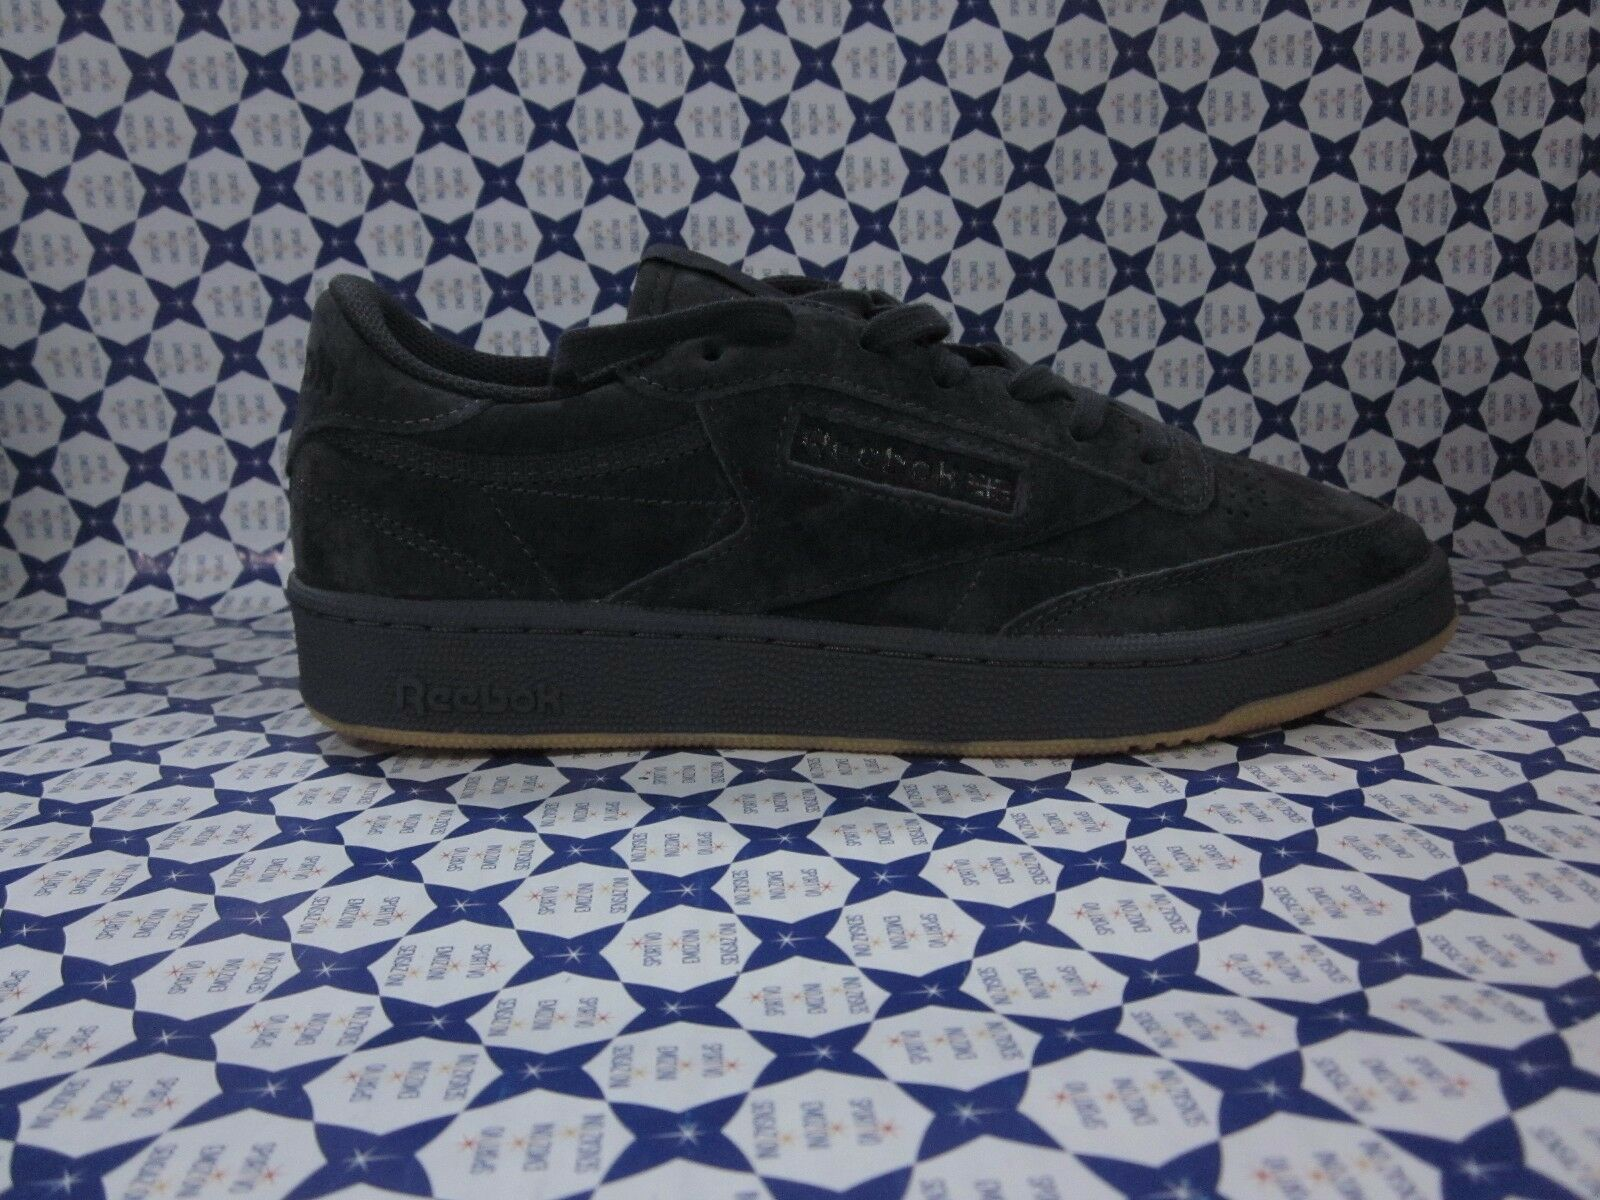 shoes Reebok Club C85 Nubuck Gym Vintage Man Navy bluee BD1885